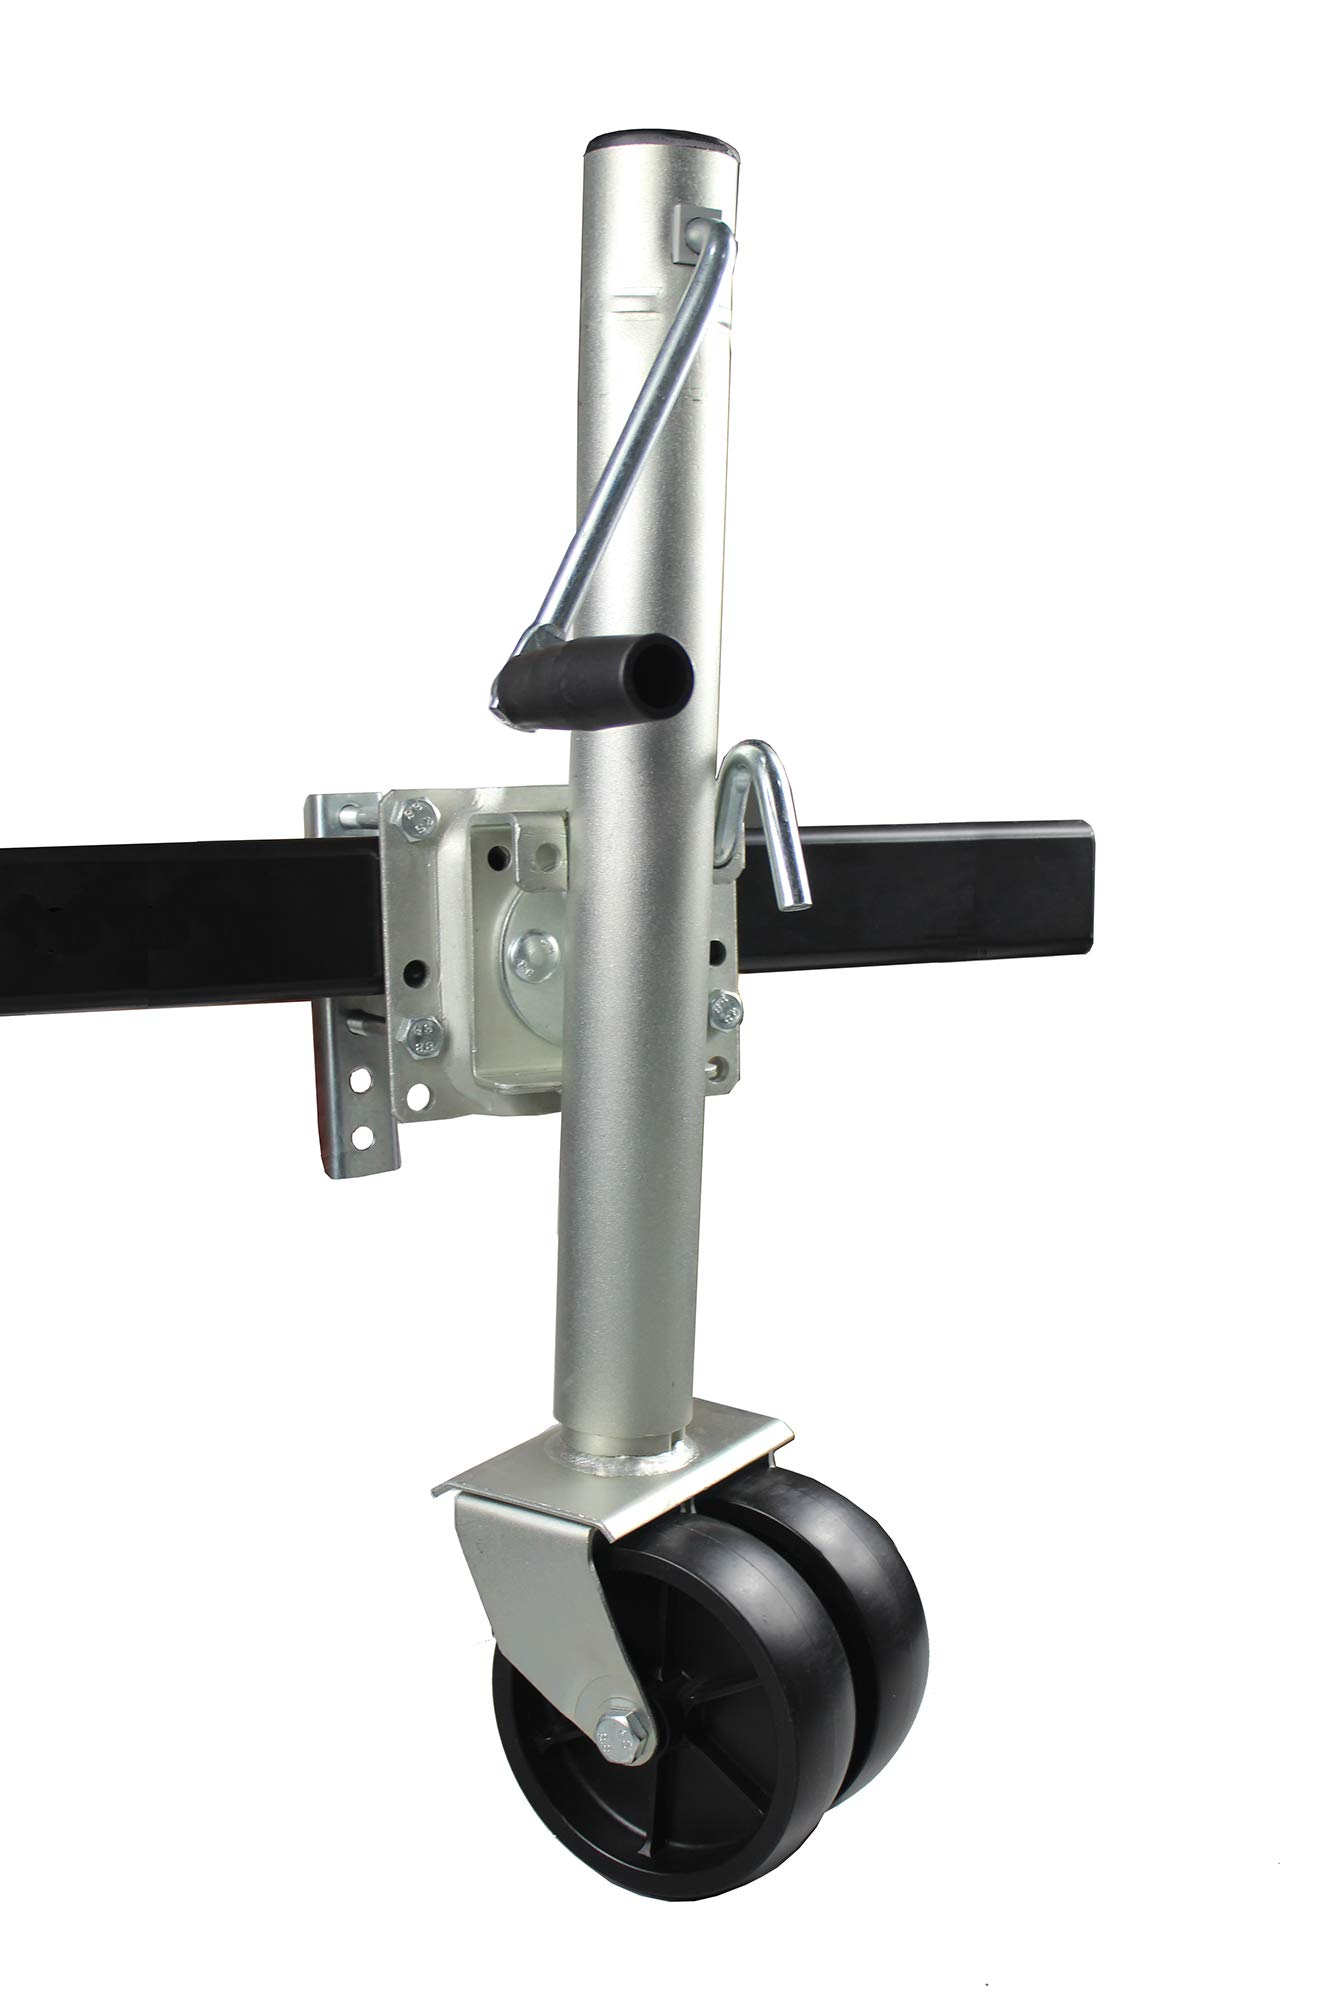 MaxxHaul  70149 26-1/2'' to 38'' Lift Swing Back Trailer Jack with Dual Wheels - 1500 lbs. Capacity by MaxxHaul